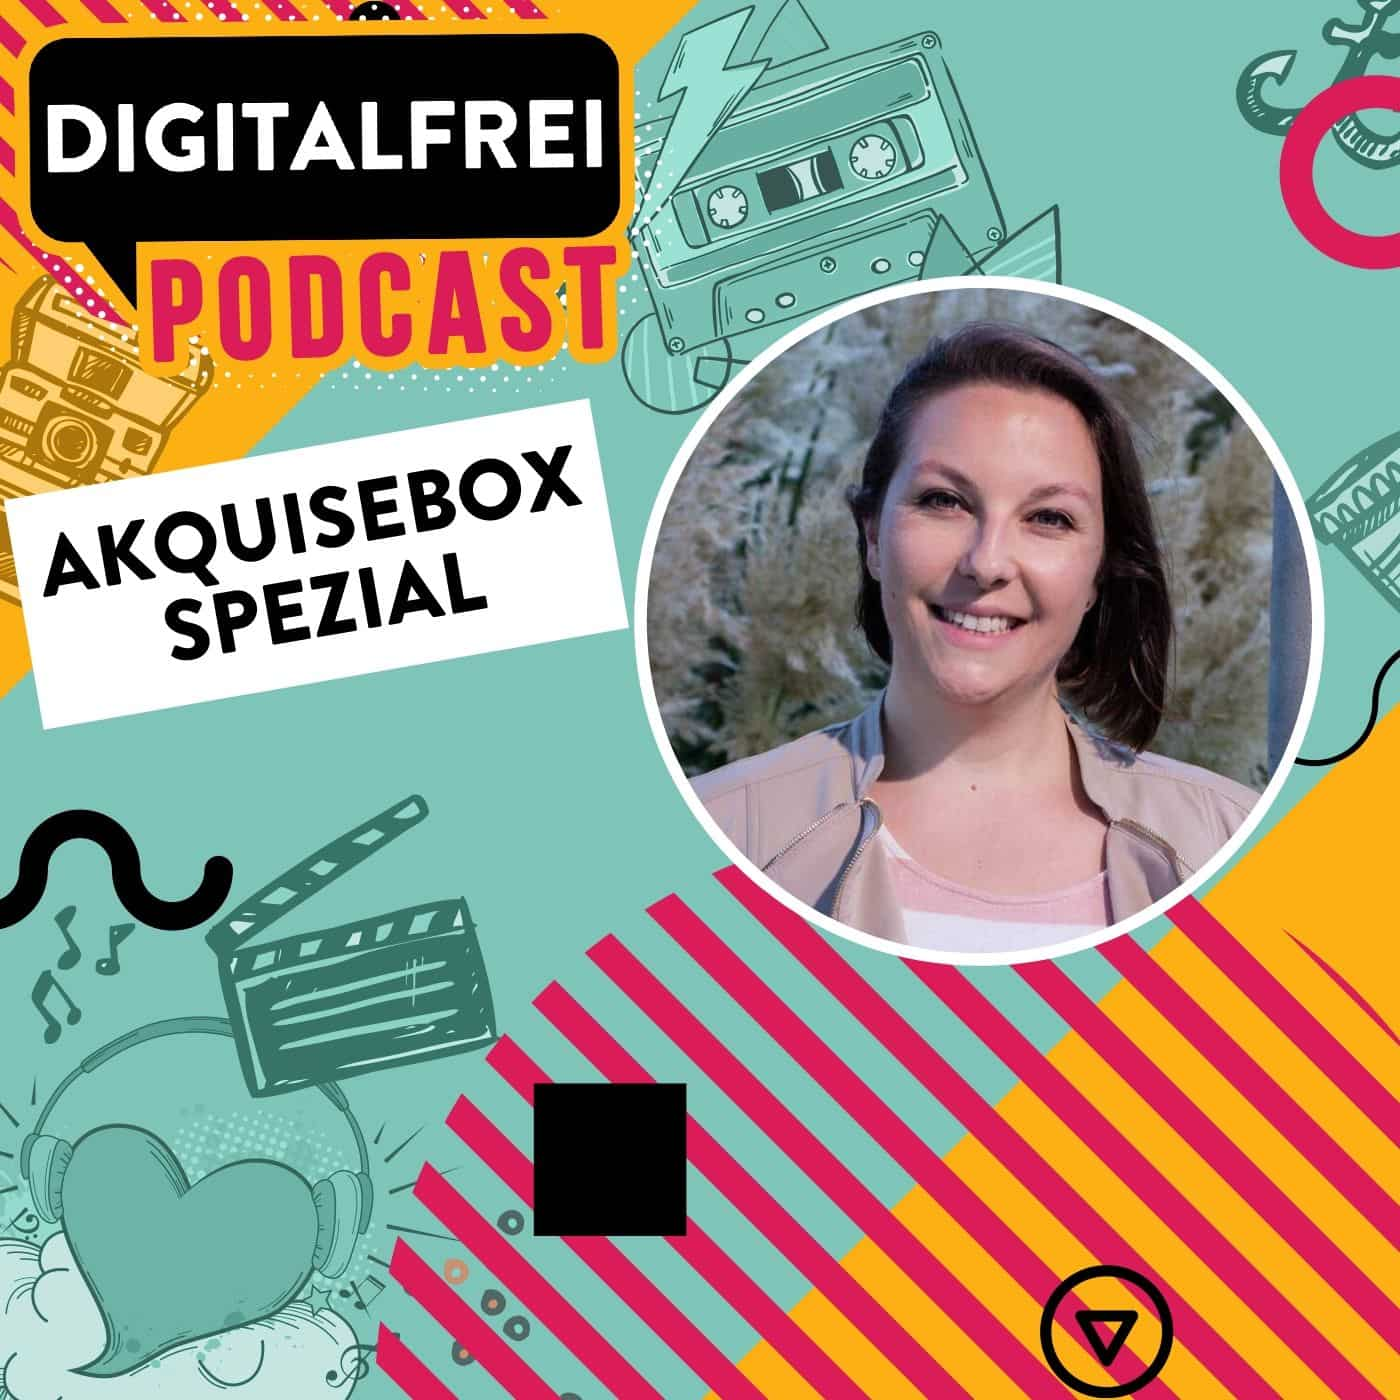 Akquisebox Spezial – Claudia Heimgartner – Marketing einfach erklärt